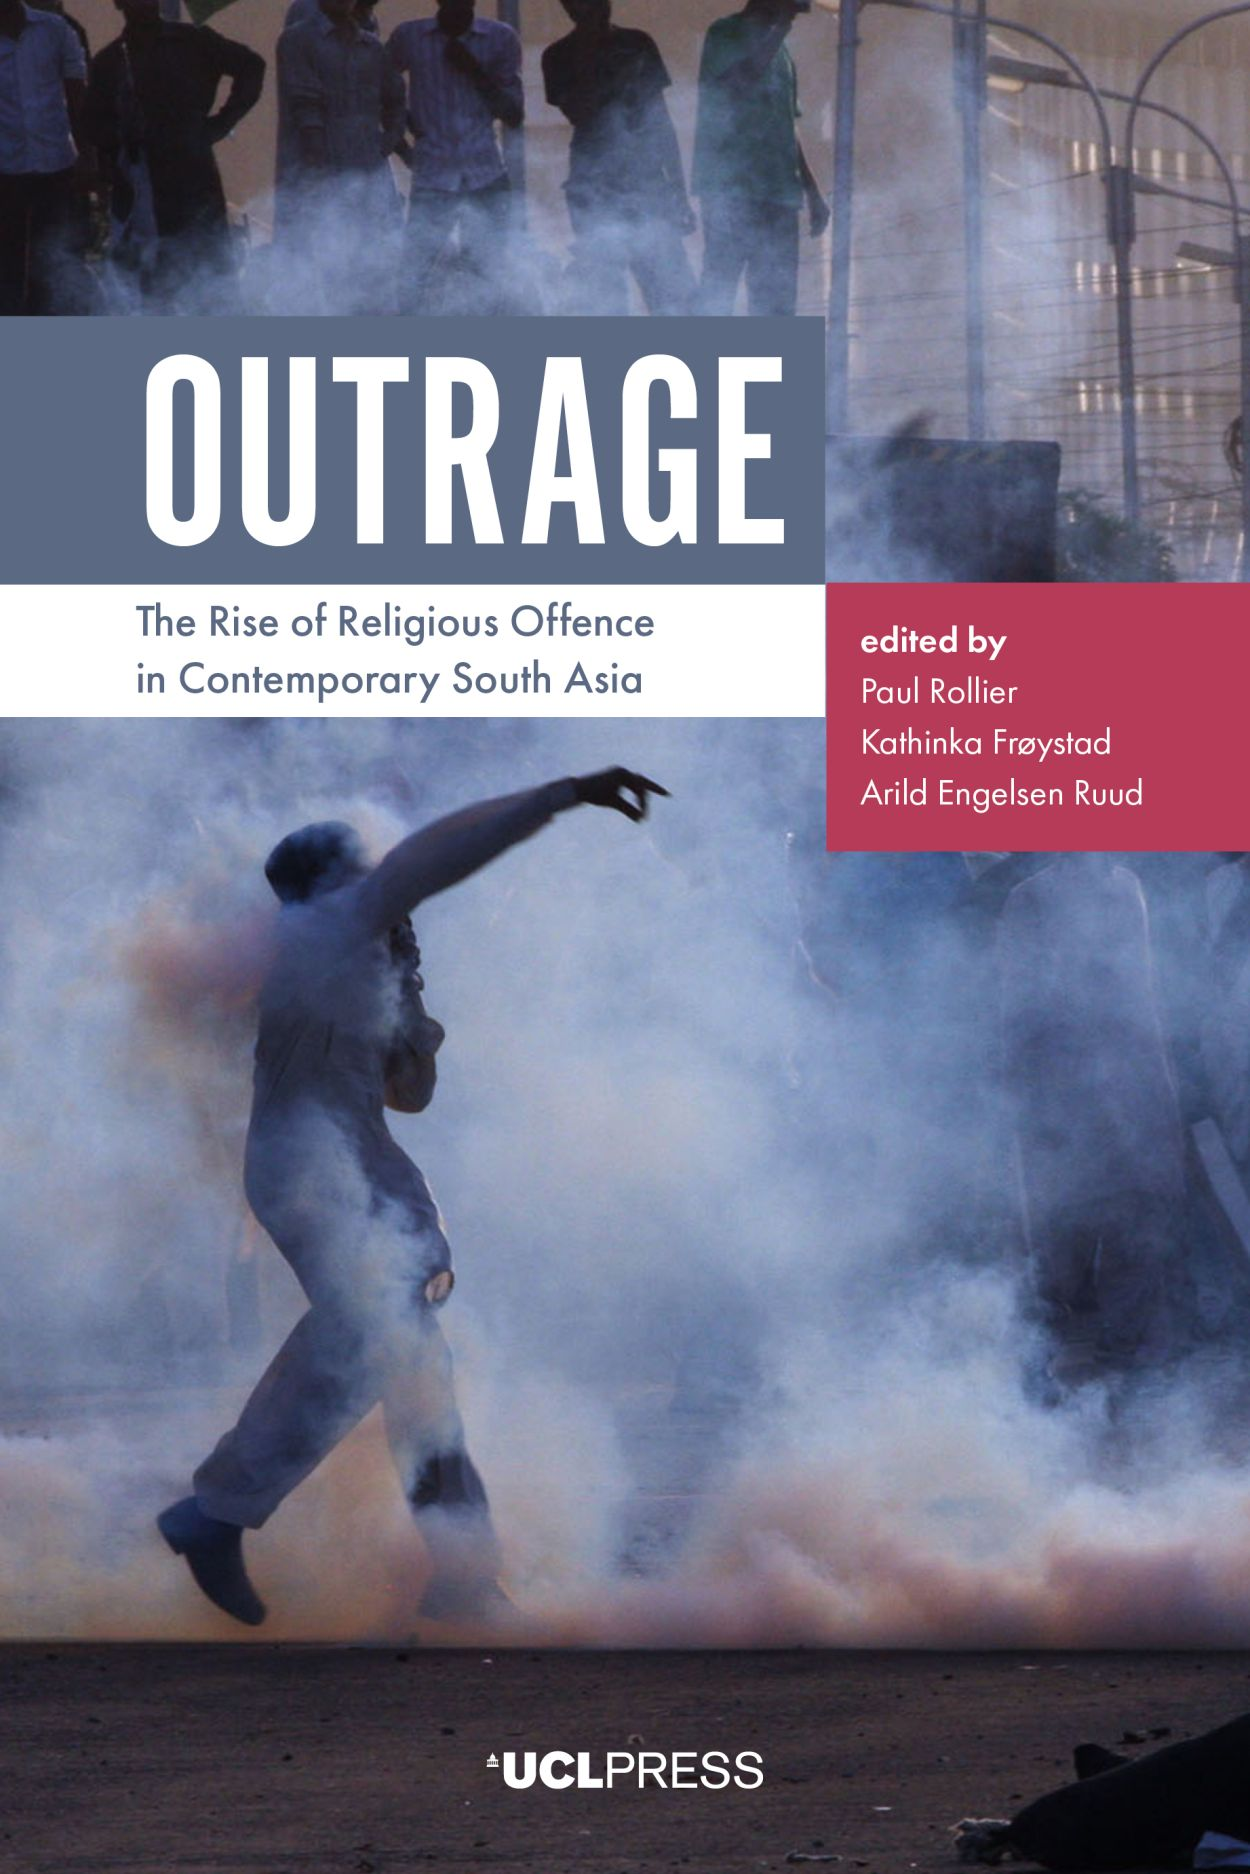 Outrage: The Rise of Religious Offence in Contemporary South Asia